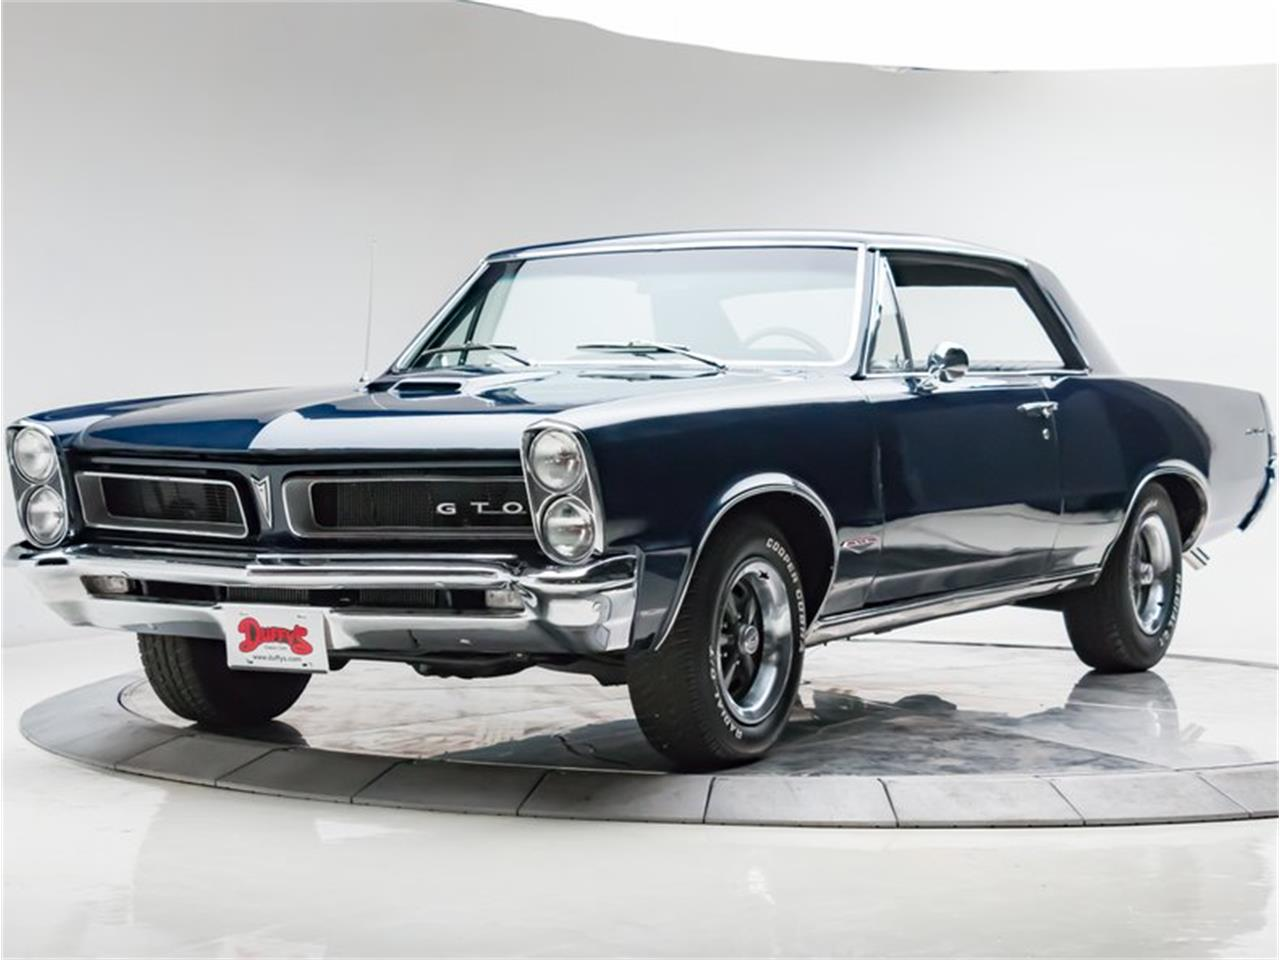 Large Picture of Classic '65 Pontiac GTO located in Cedar Rapids Iowa - $37,950.00 Offered by Duffy's Classic Cars - N6UR